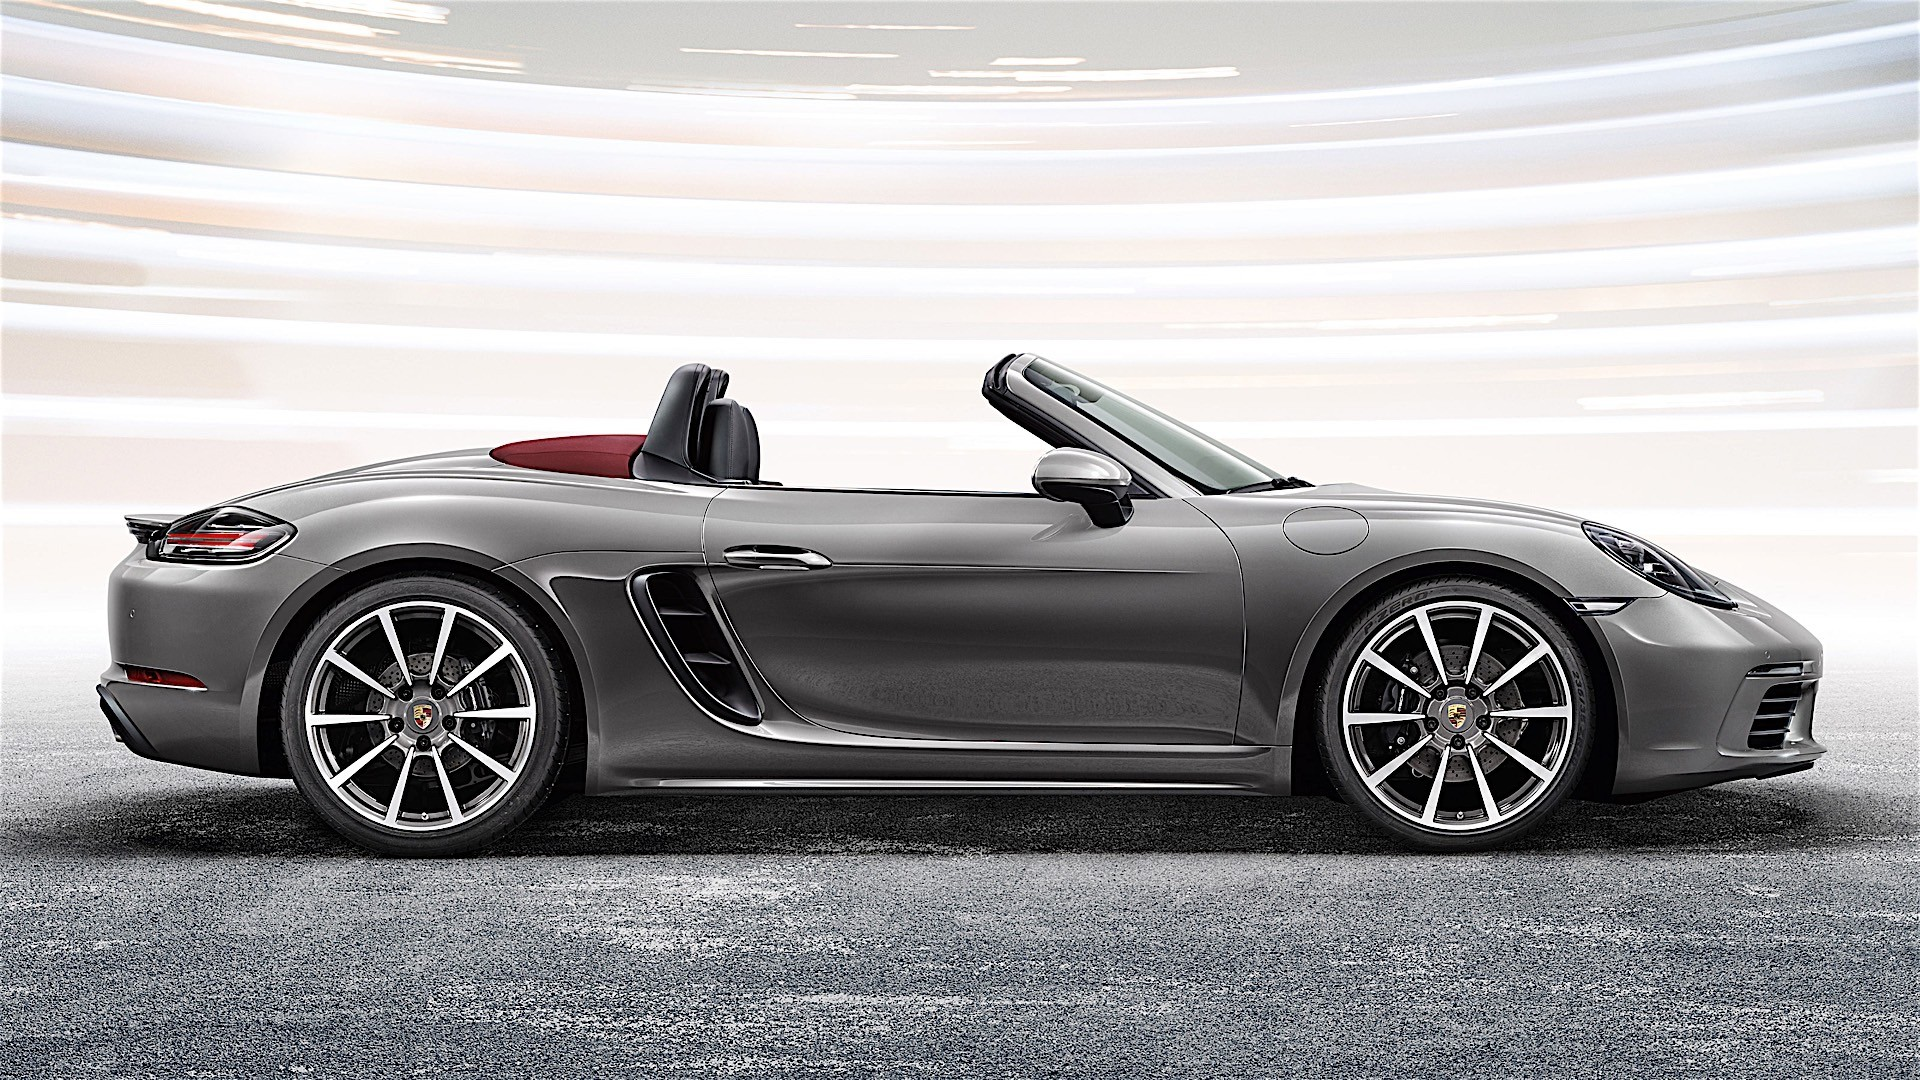 Porsche Averages More Than $17K In Profits On Every Vehicle It Sells